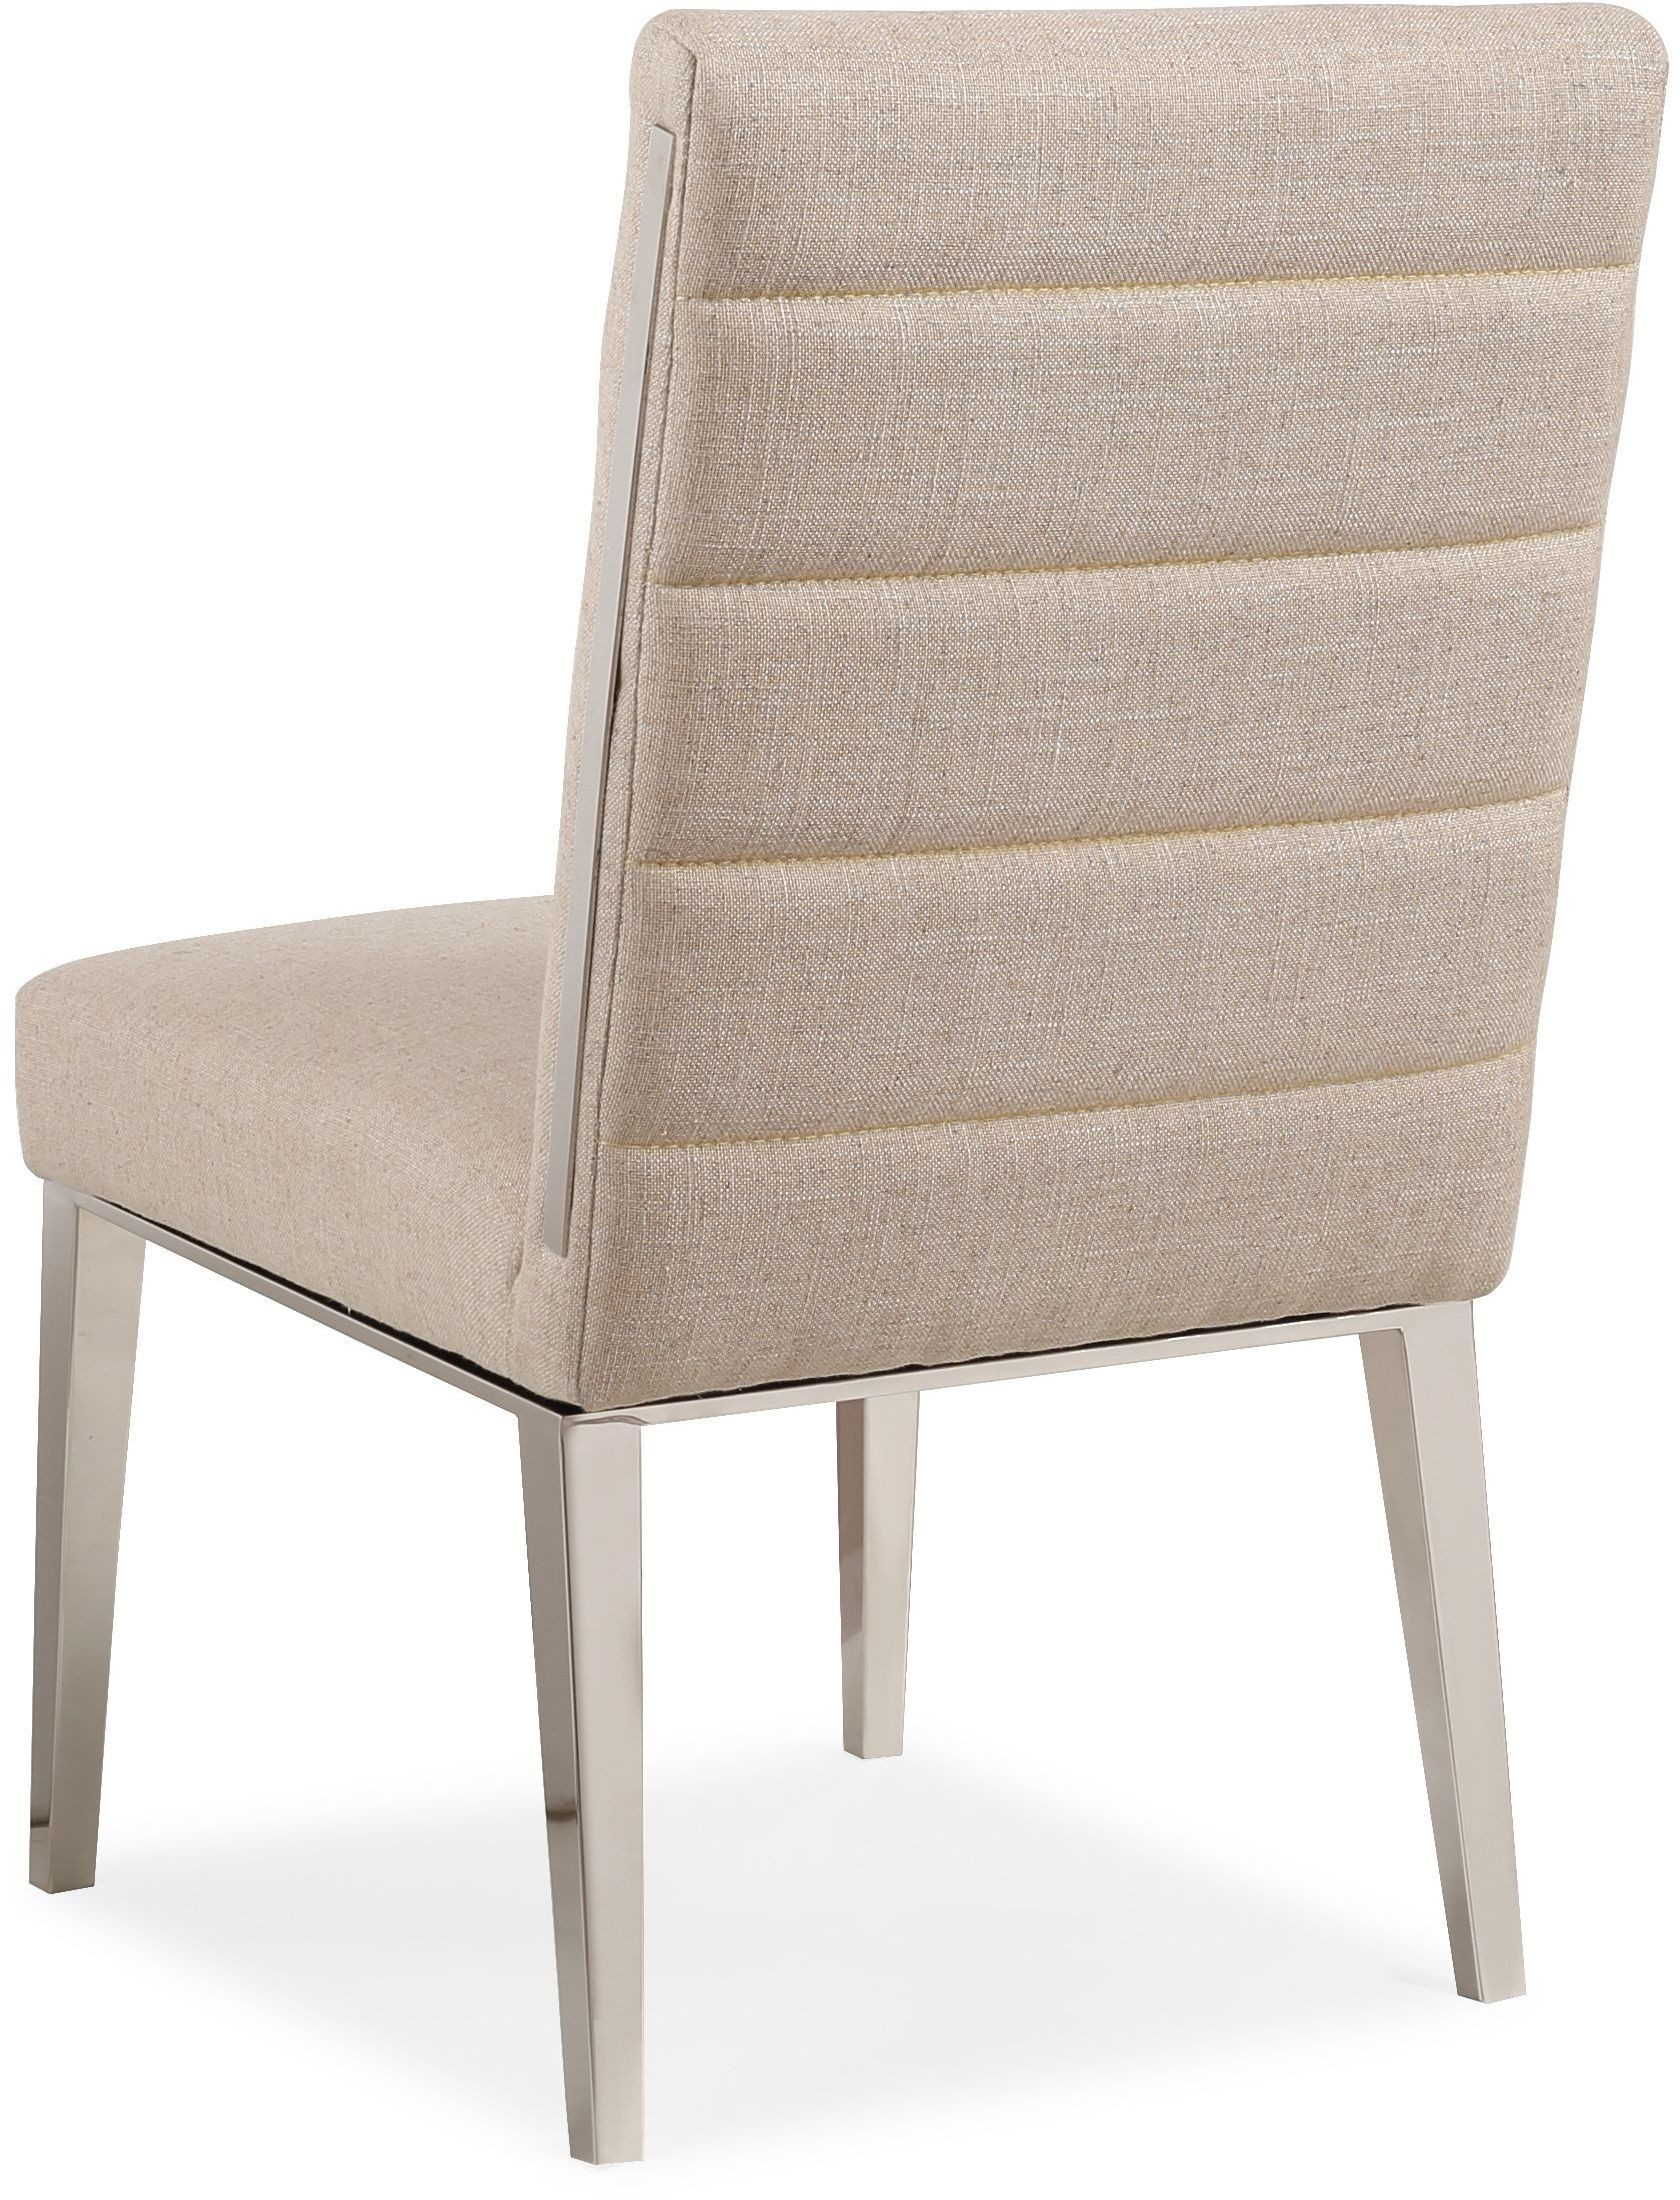 beige dining chairs wicker chair with ottoman olive linen d3731 tov furniture